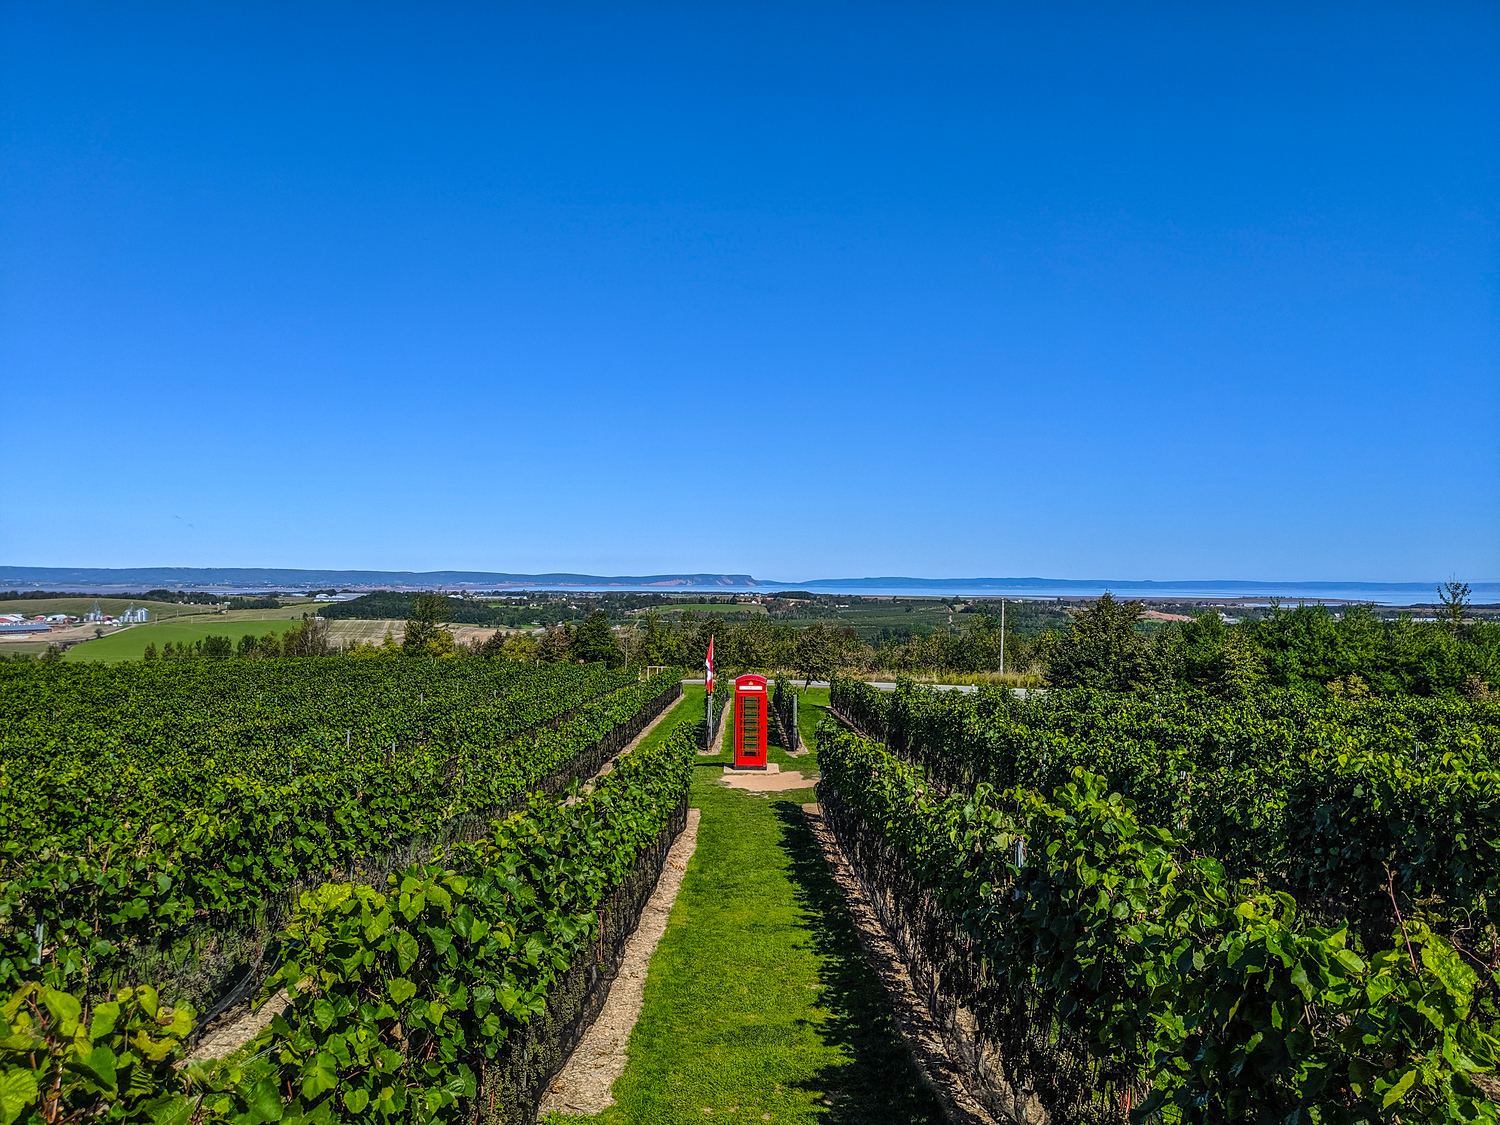 Luckett Vineyards in Wolfville Nova Scotia with its iconic British red phone booth.